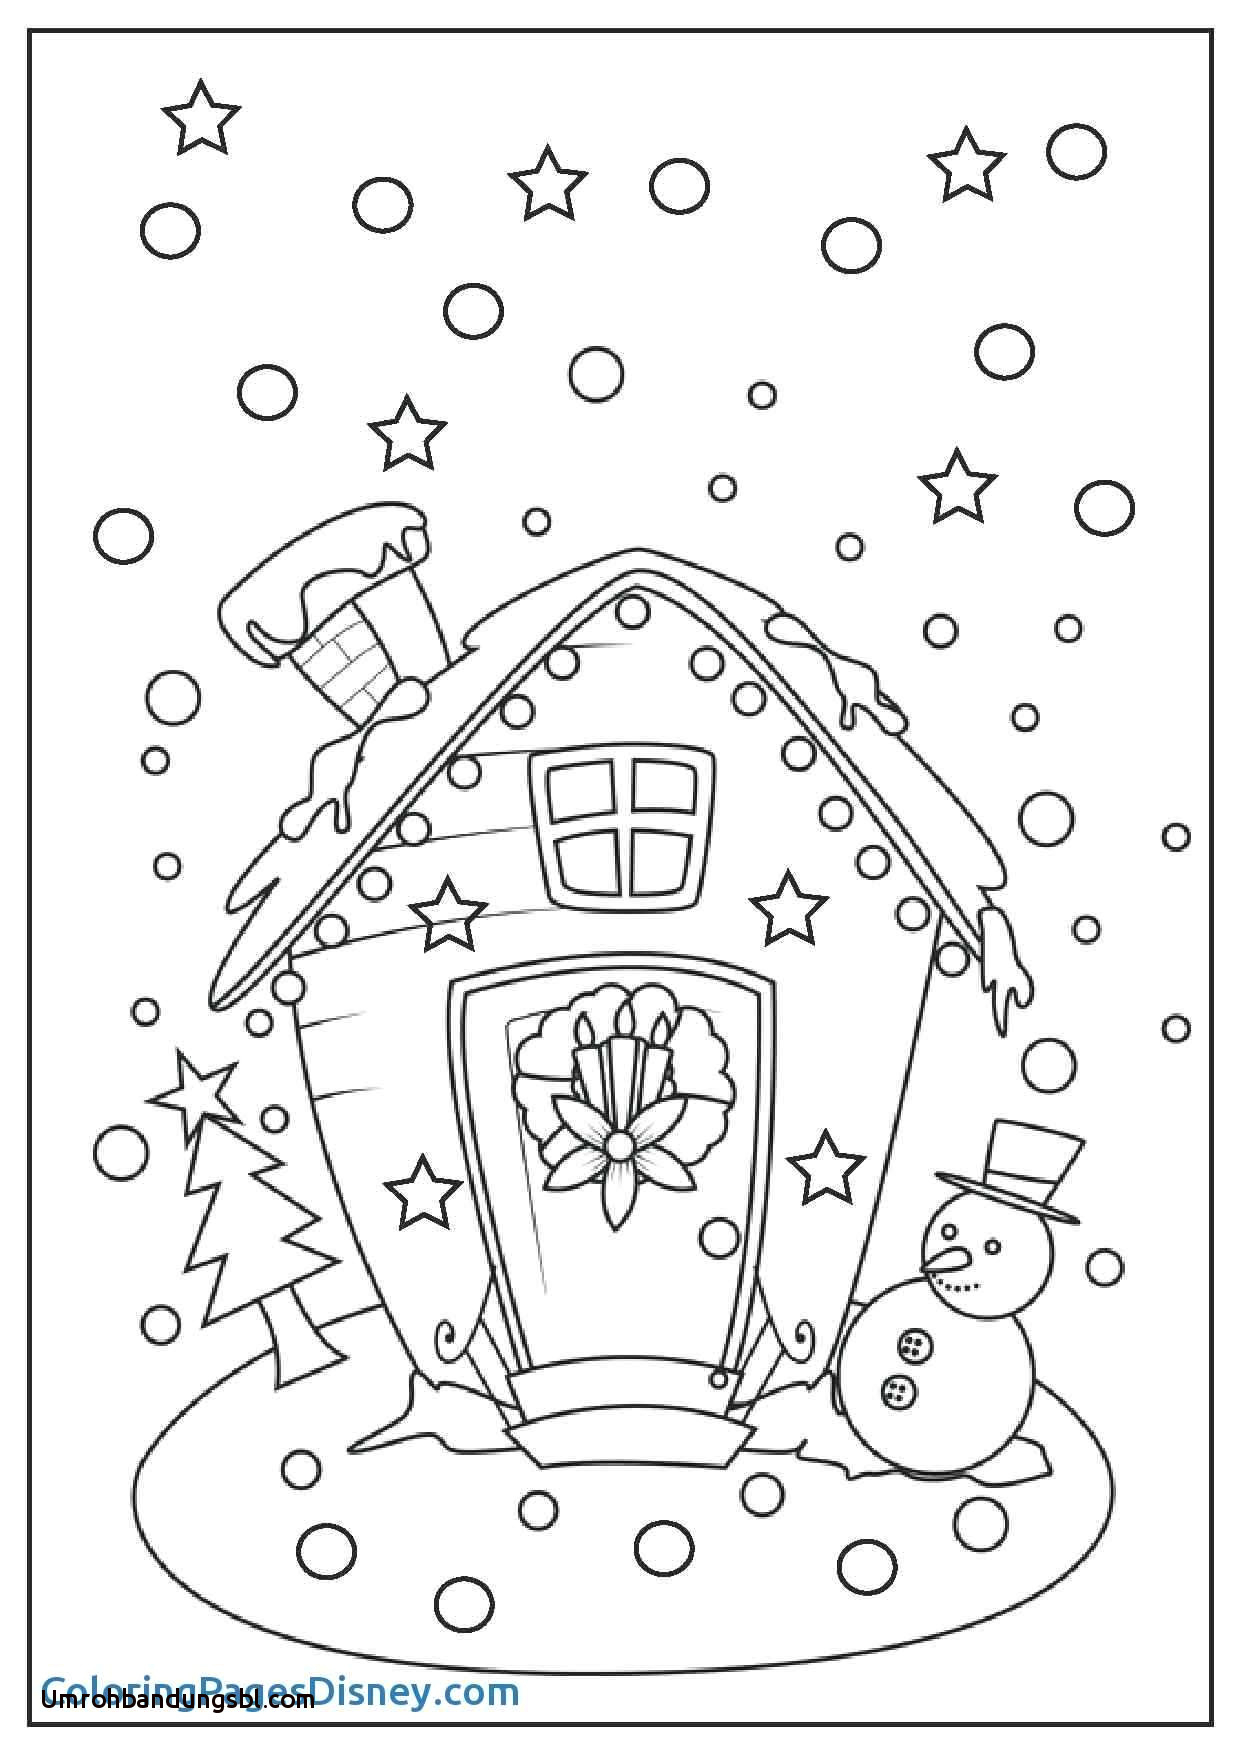 free number coloring pages Collection-Free Merry Christmas Coloring Pages Cool Coloring Pages Printable New Printable Cds 0d Coloring Pages 17-l